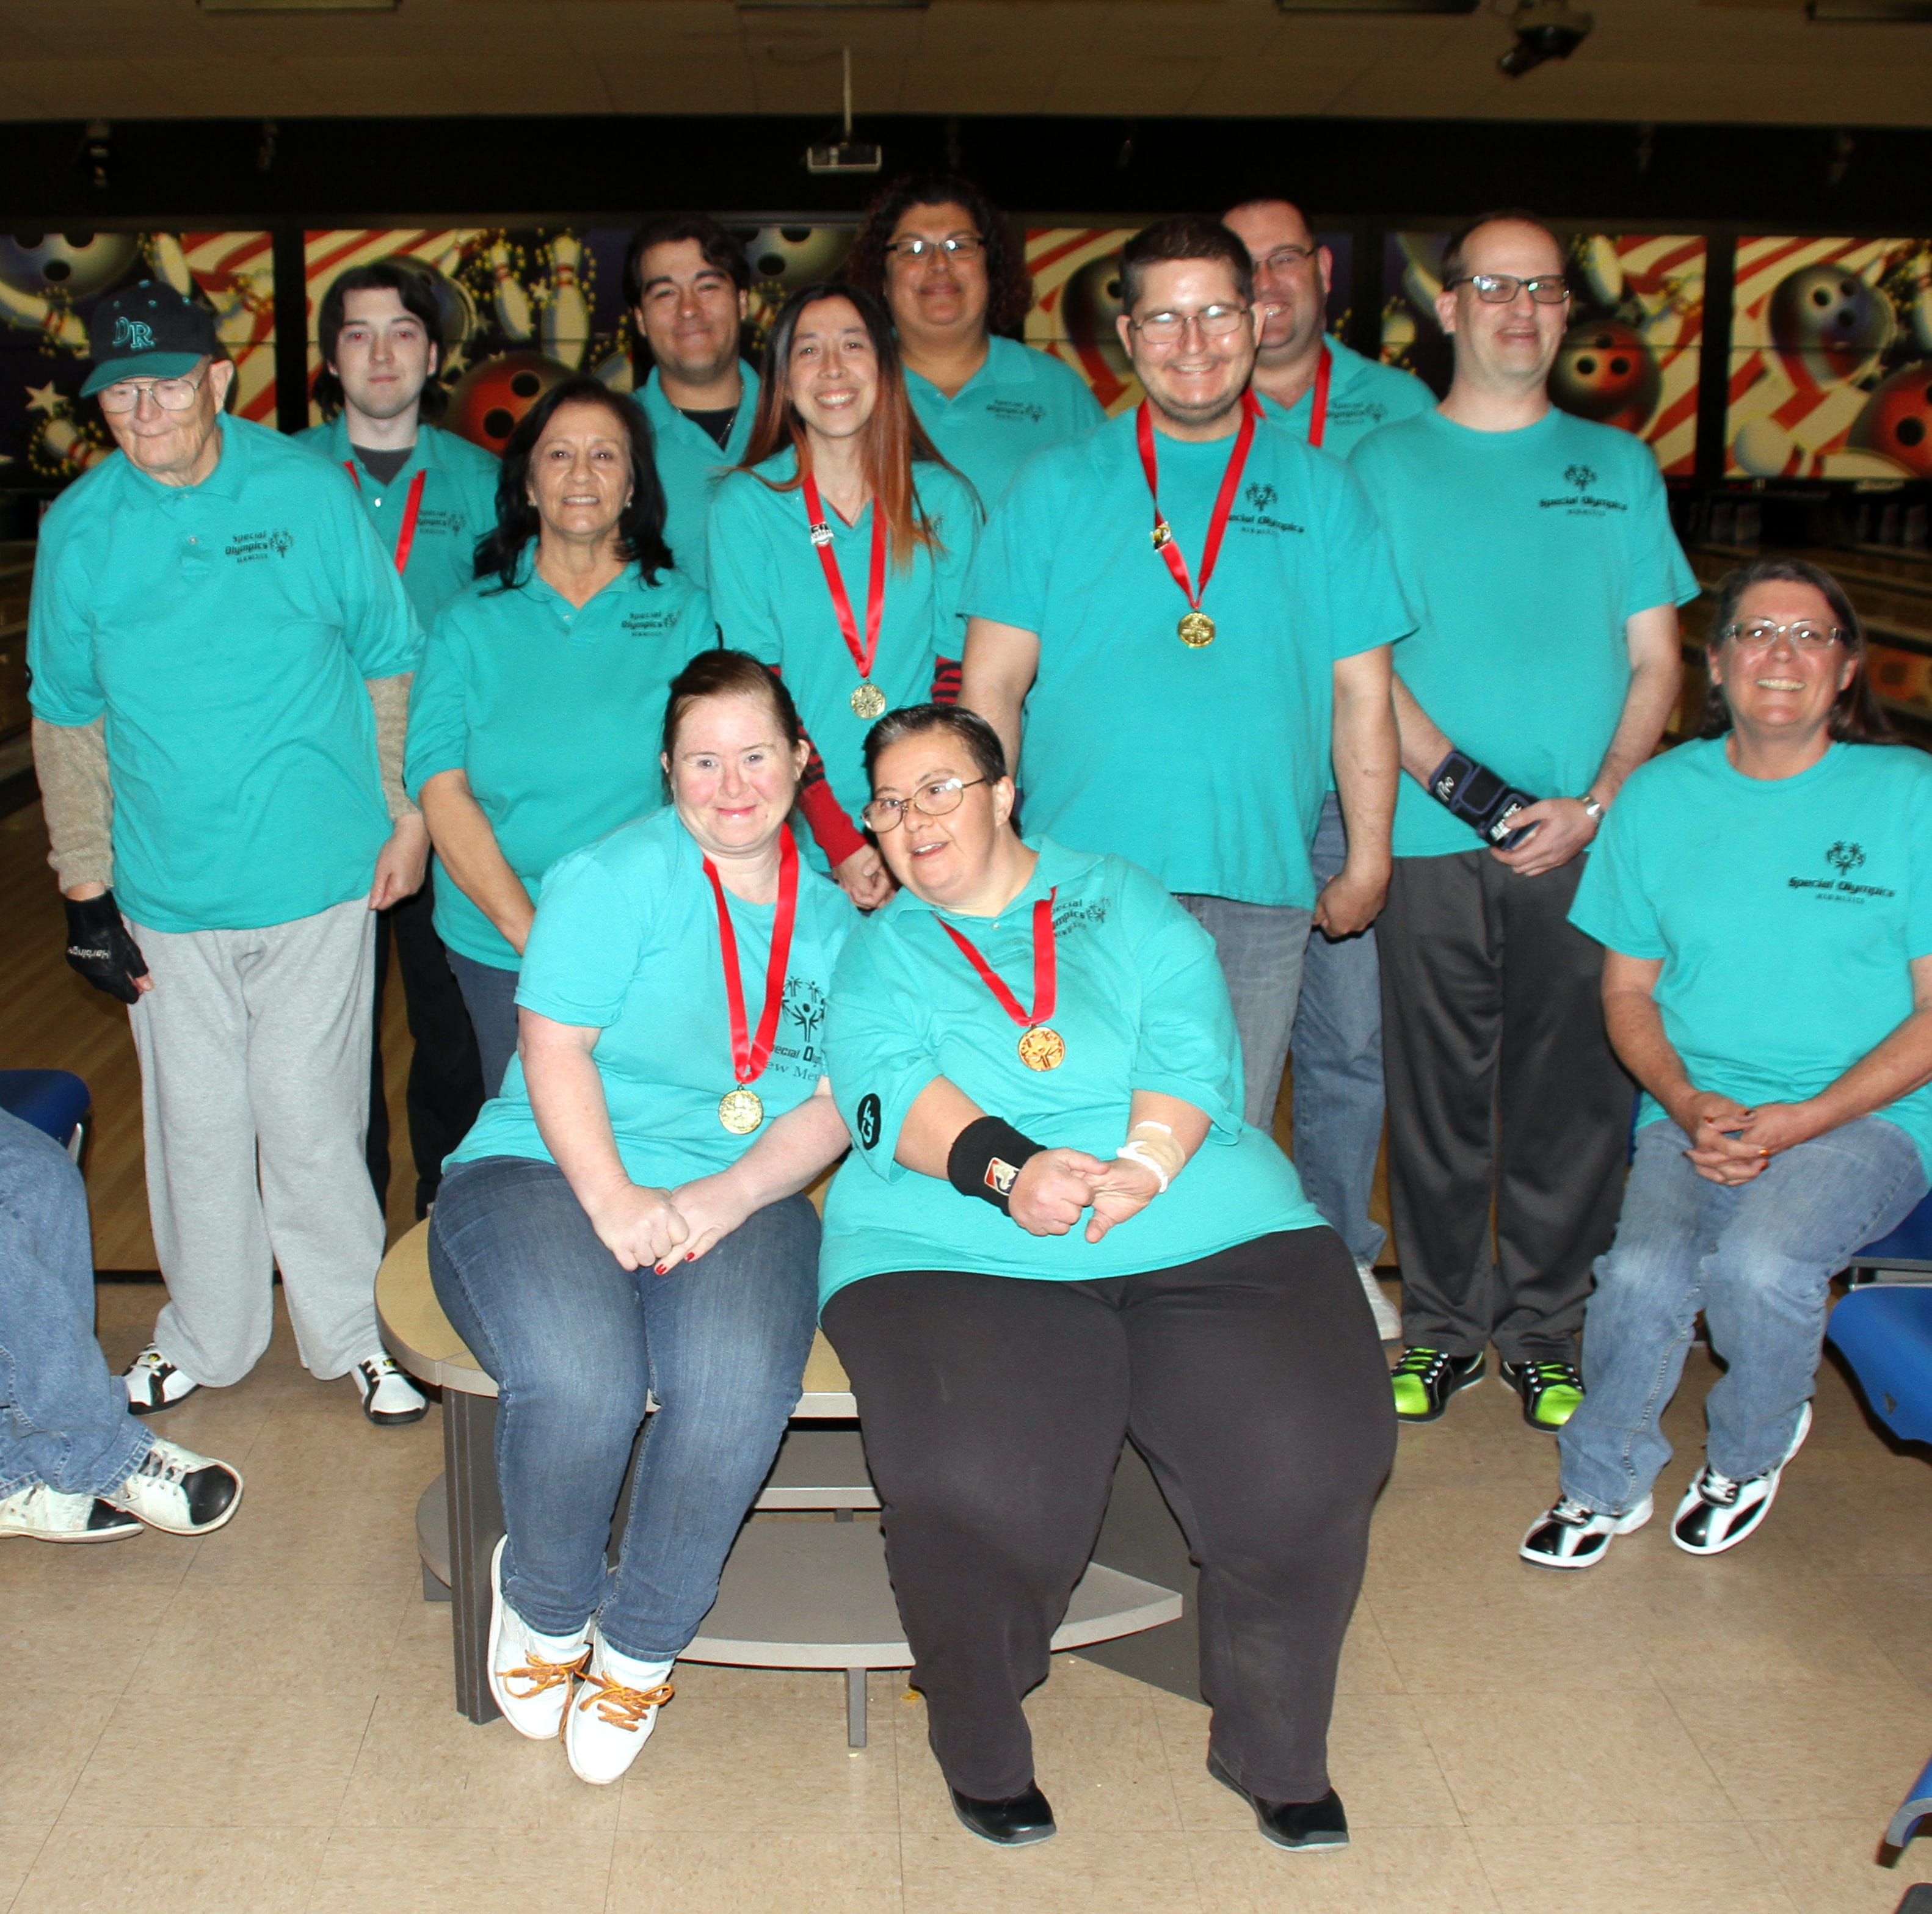 Deming Roadrunners place at Special Olympics State Bowling Tournament in Albuquerque, NM